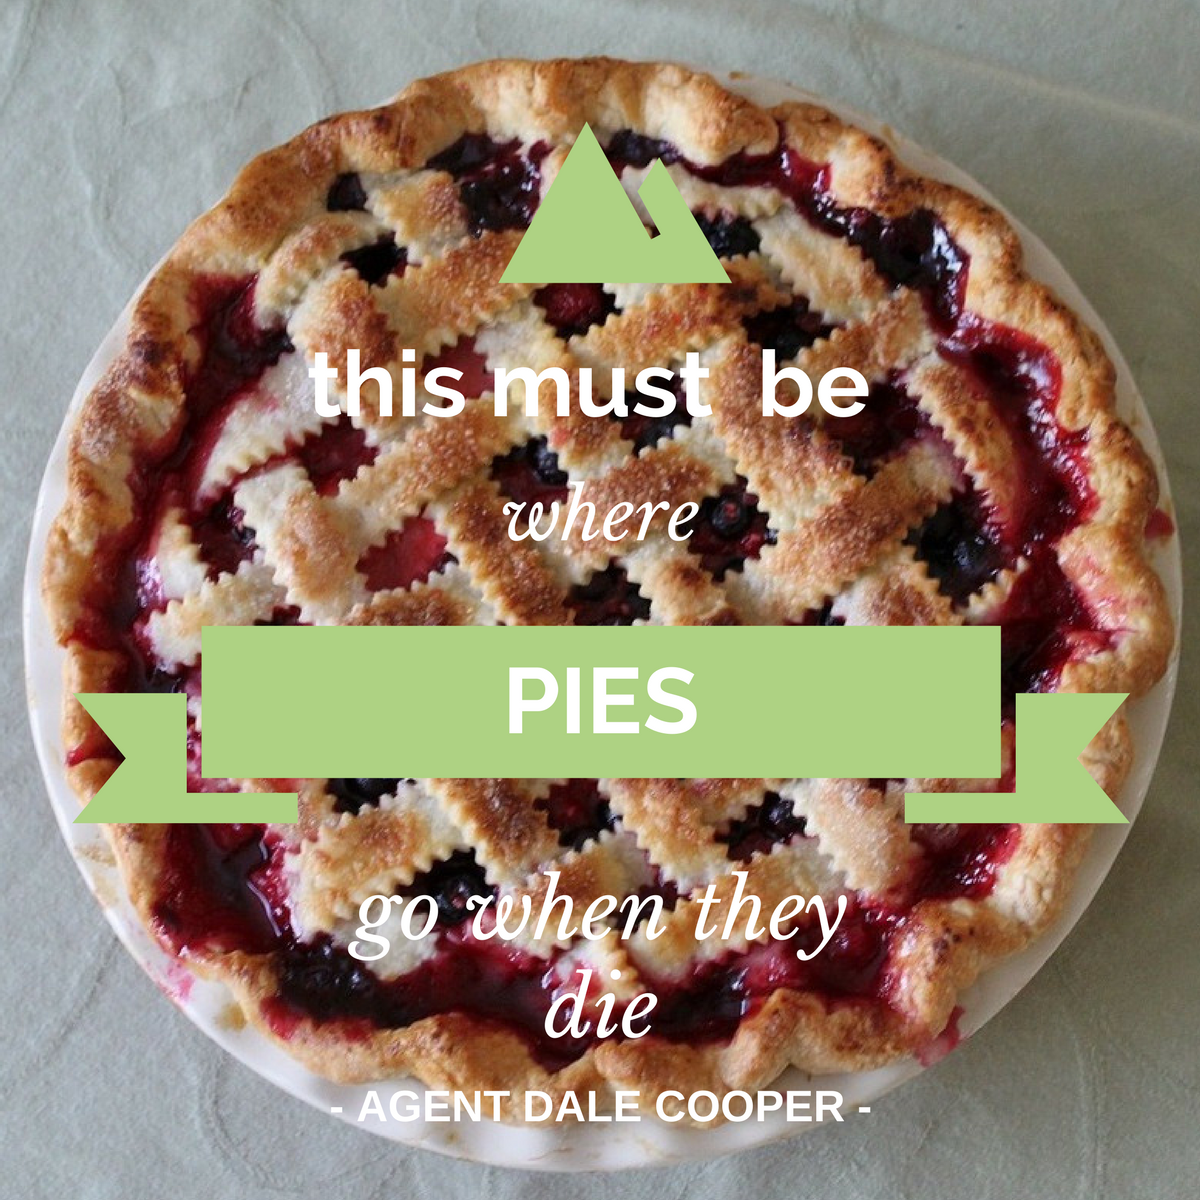 twin peaks pie quote